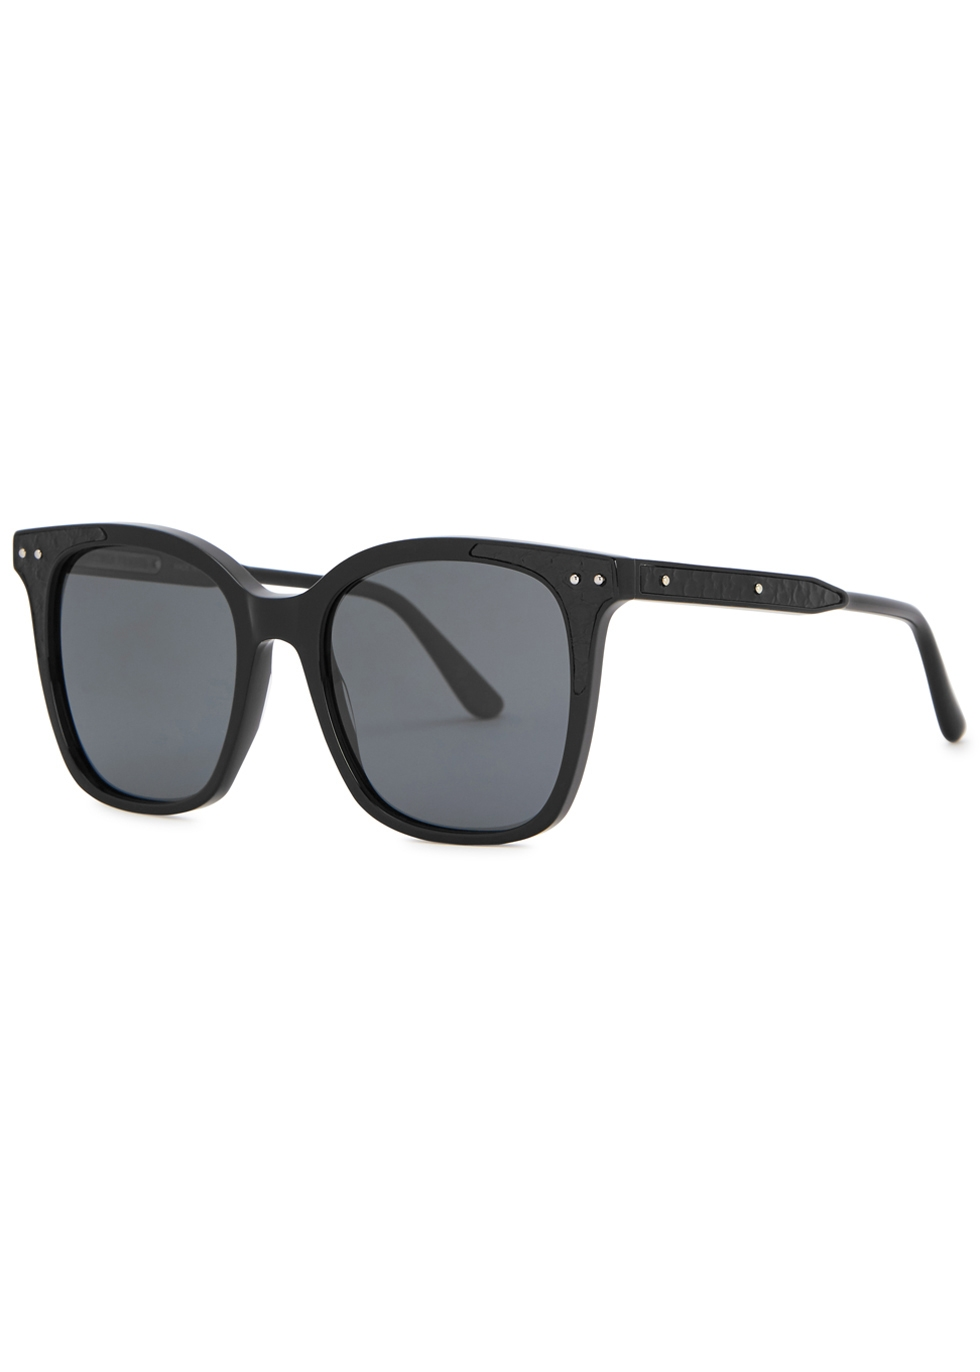 Black square-frame sunglasses - Bottega Veneta